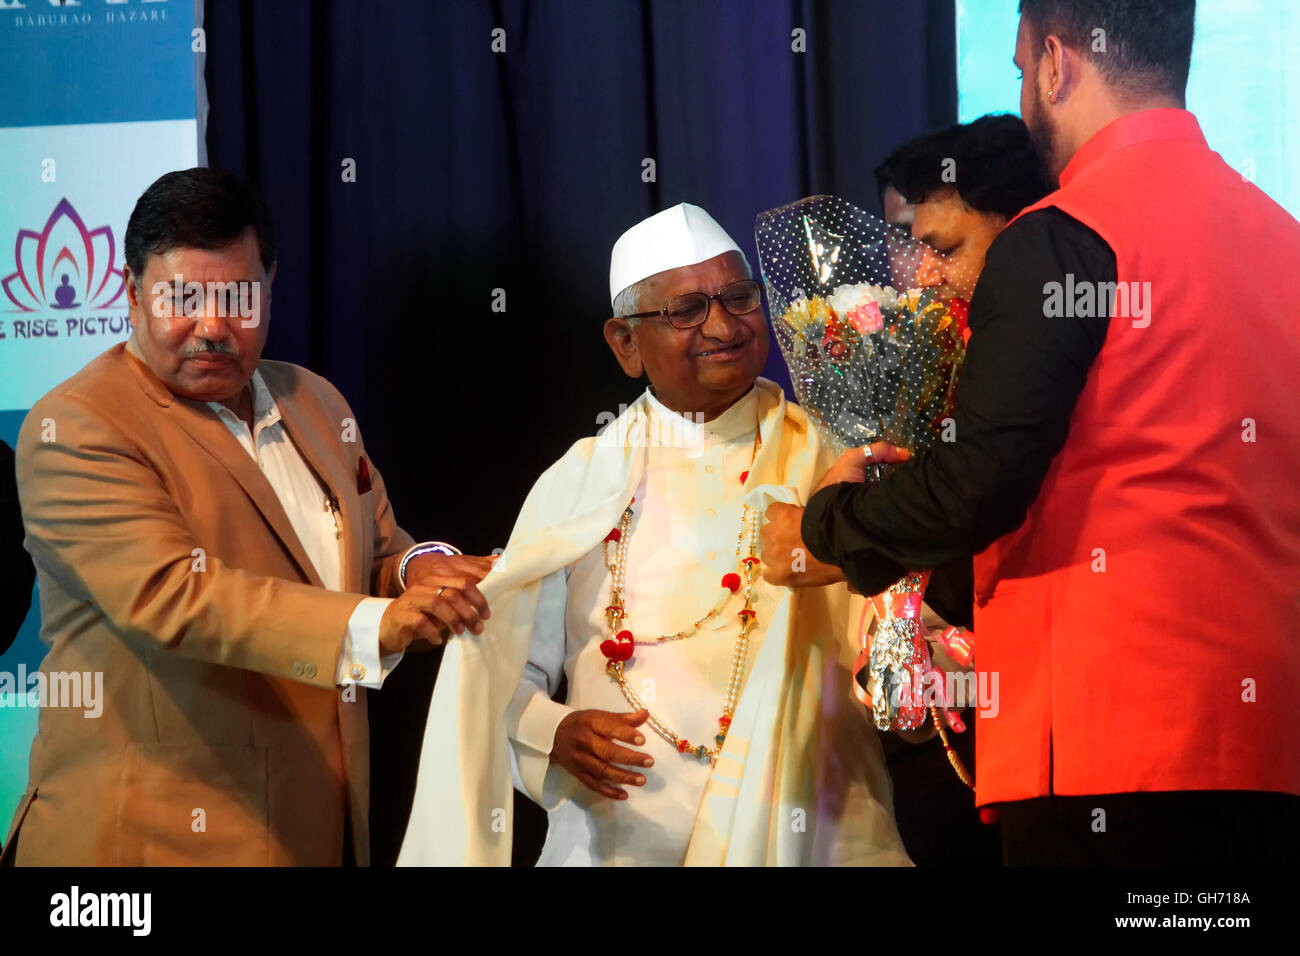 Anna Hazare being felicitated by flowers and shawl at the poster unveiling ceremony of an upcoming biopic. - Stock Image